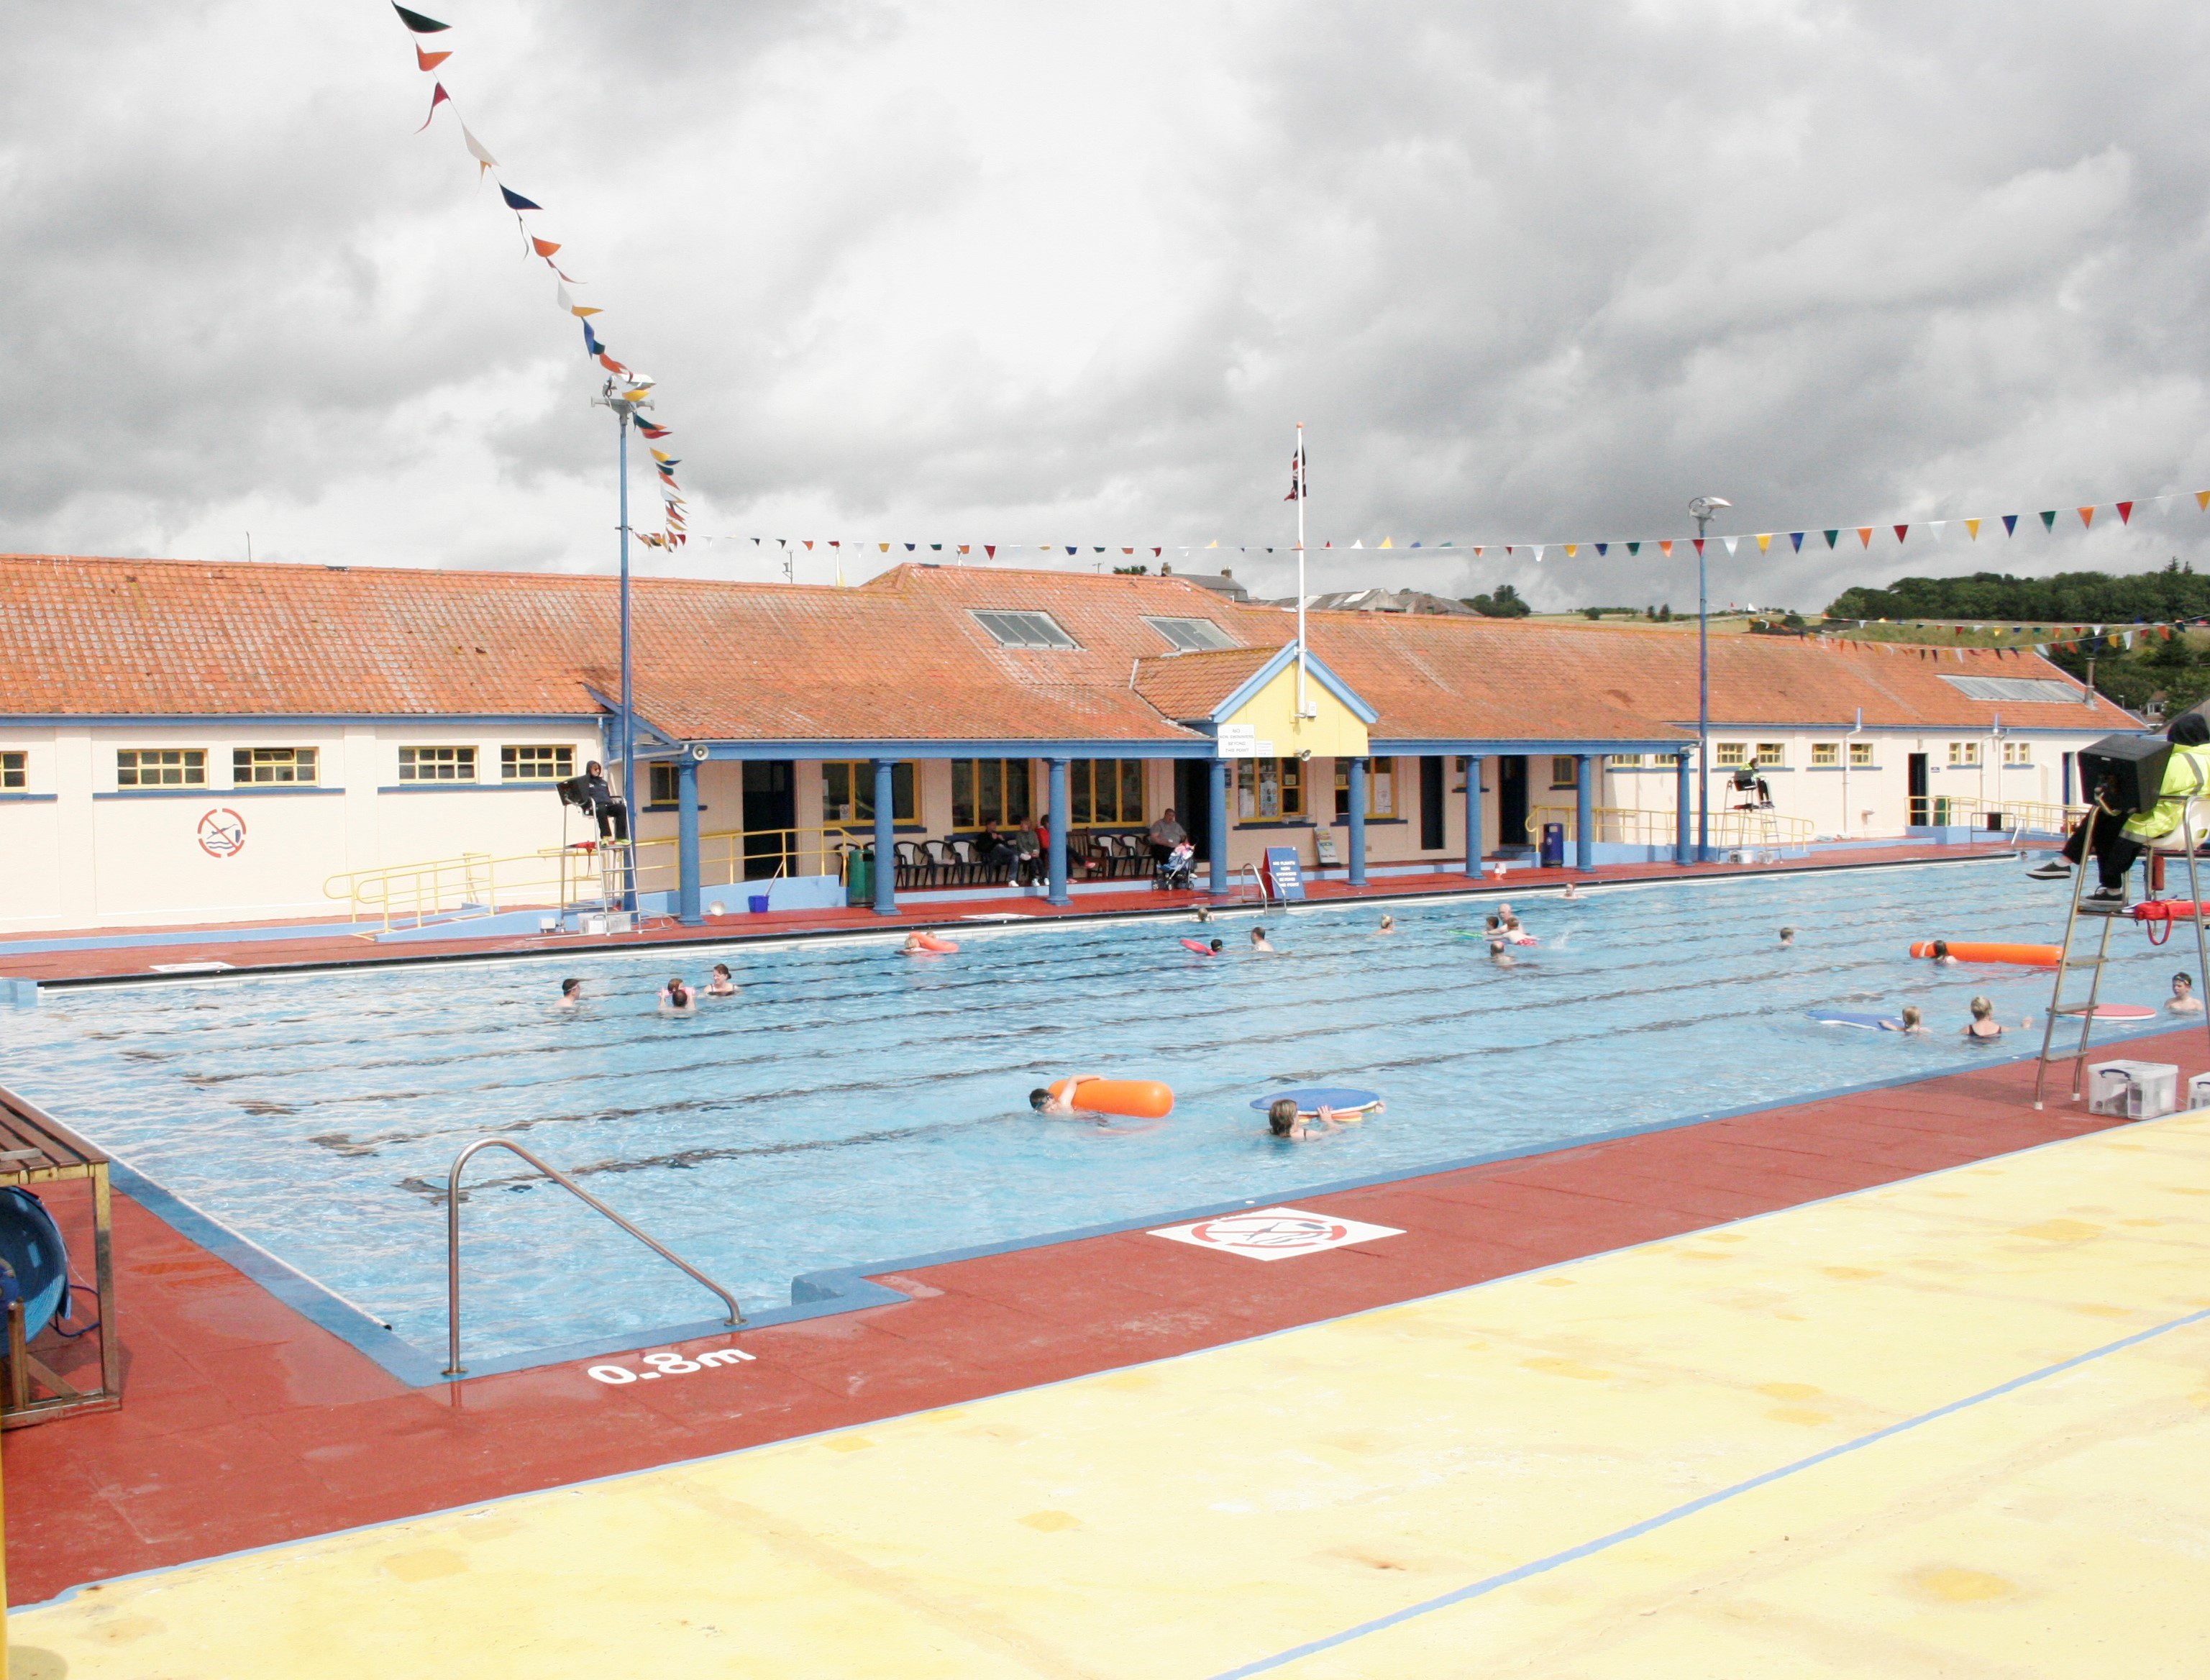 Stonehaven Open-Air Swimming Pool Aberdeen and the Northeast, Stonehaven Open Air Pool | LOOKING BACK | MOVING FORWARDS